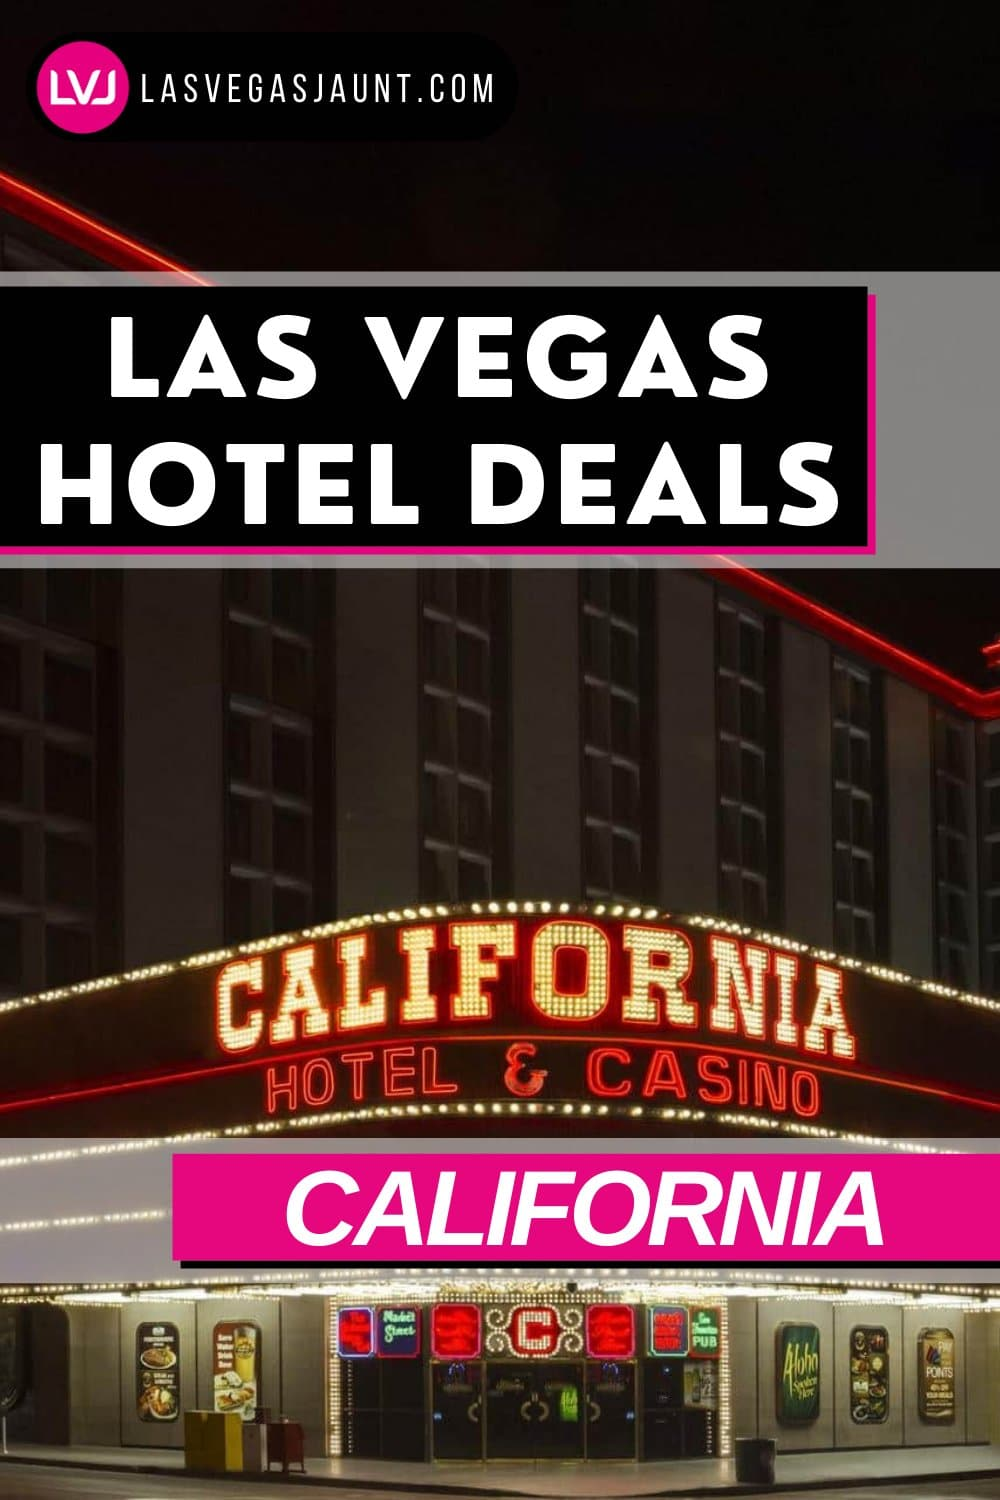 California Hotel Las Vegas Deals Promo Codes & Discounts